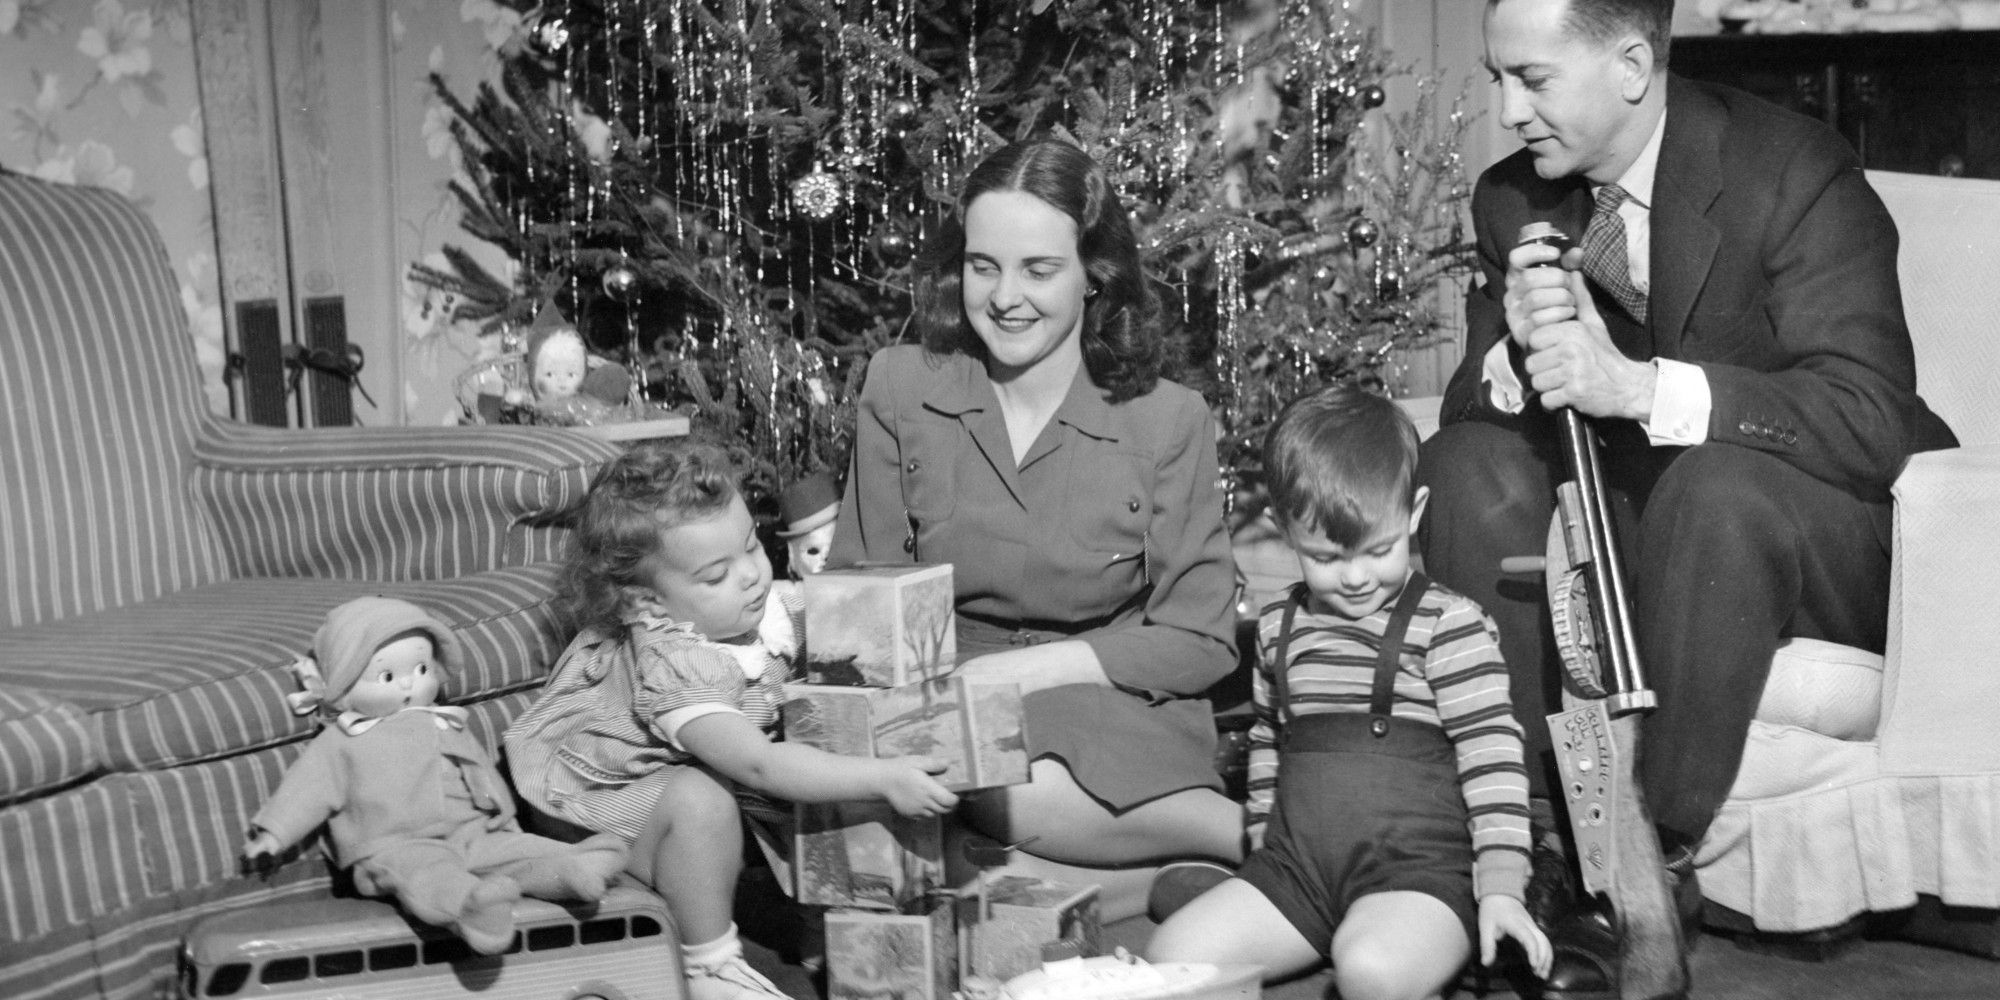 """When picturing the typical American family, you can forget about a """"Leave It To Beaver""""-type image. Currently, 54 percent of kids in this country don't live in a home with two heterosexual parents in their first marriage, according to a rec..."""